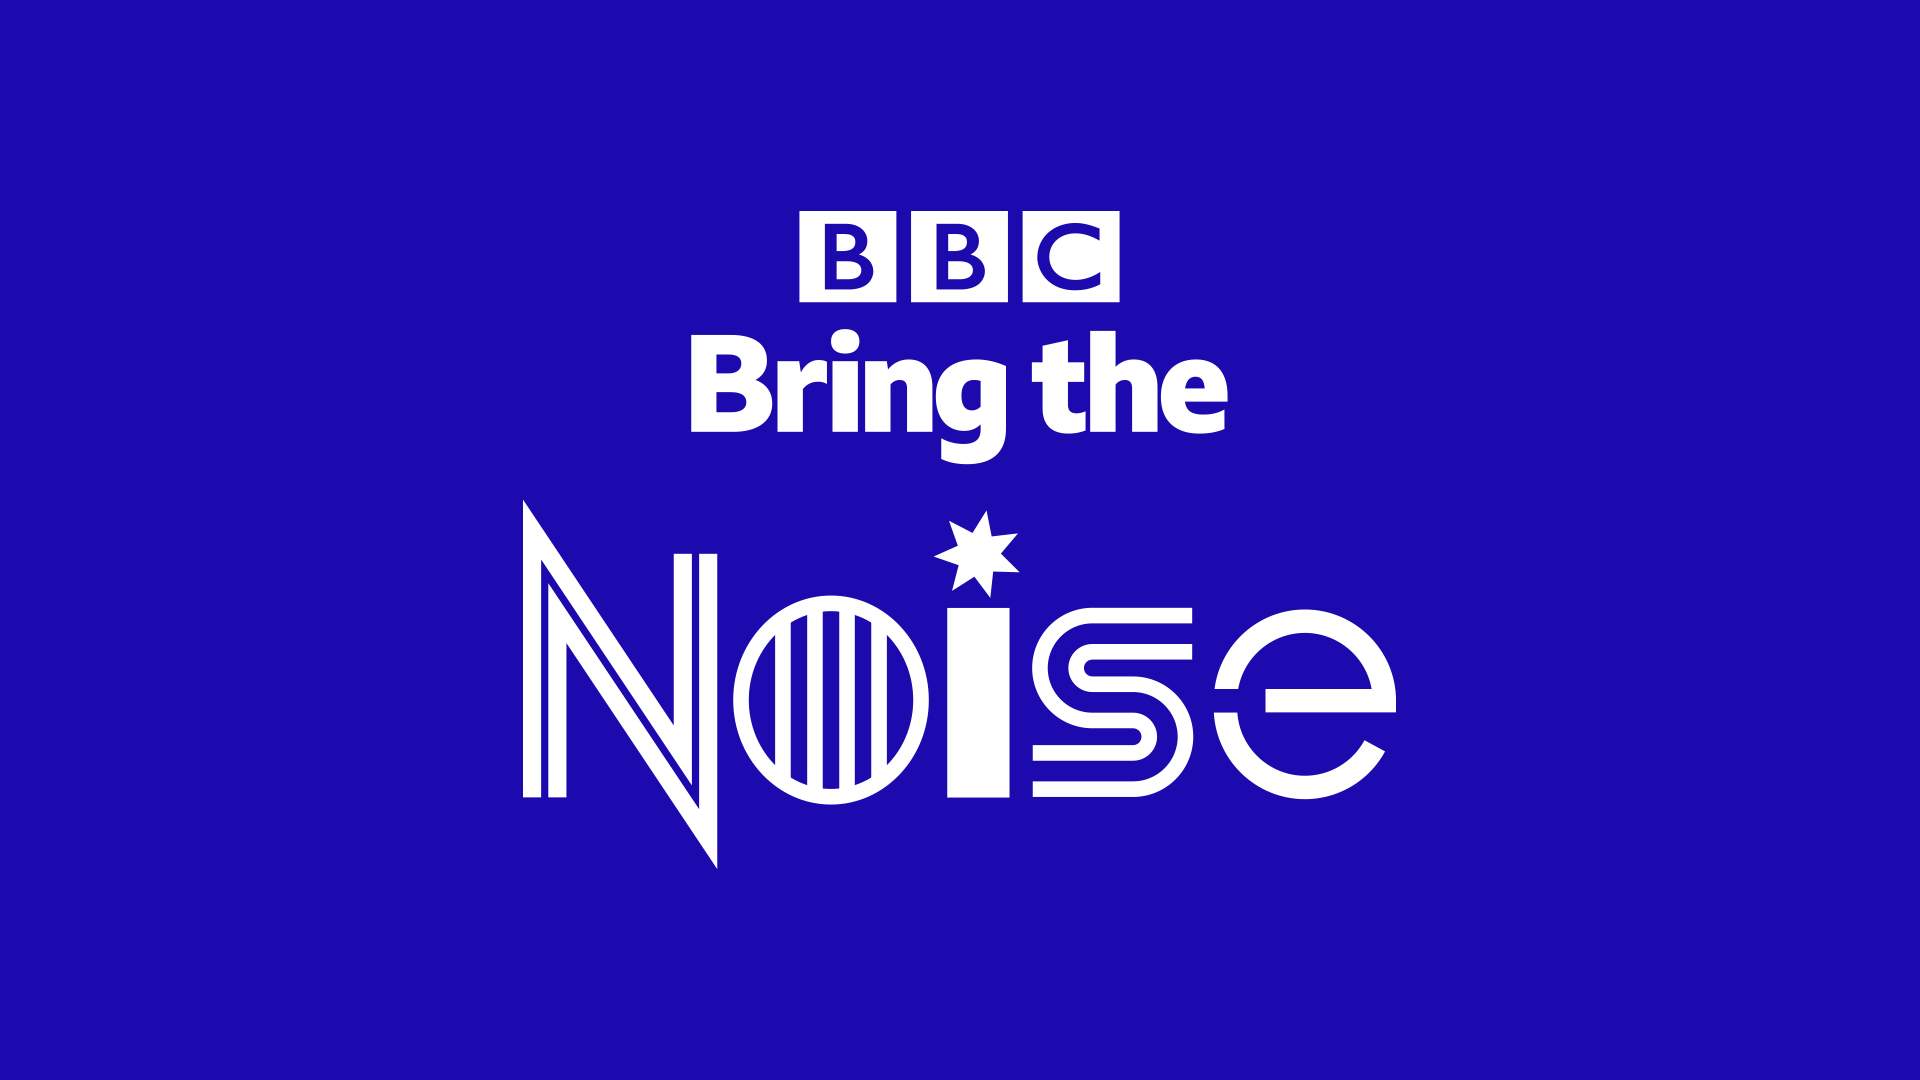 BBC Bring the Noise